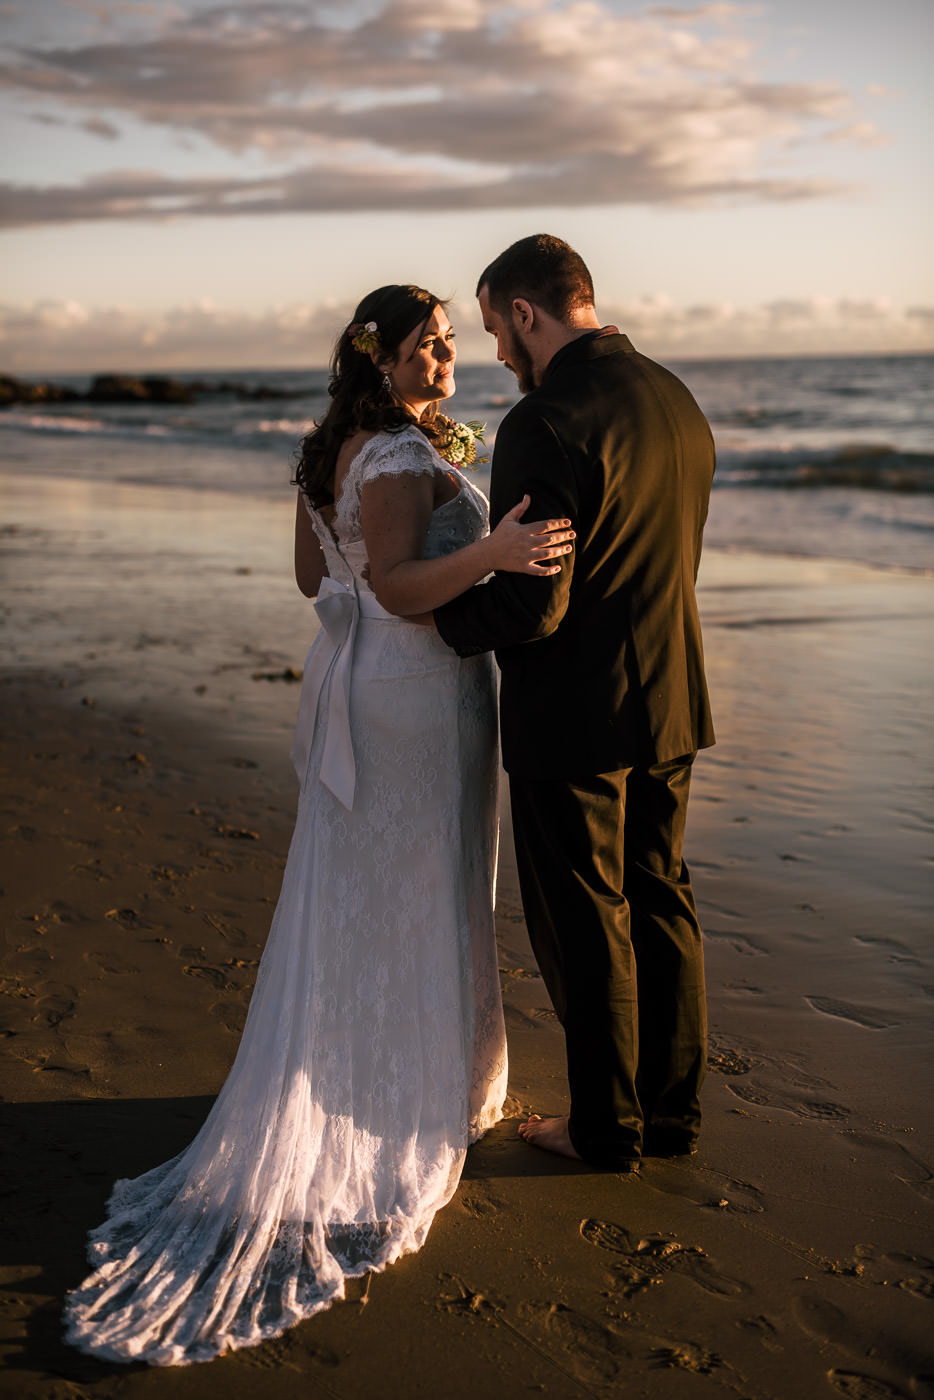 Dramatic photo of a newly married bride and groom at Laguna Beach.